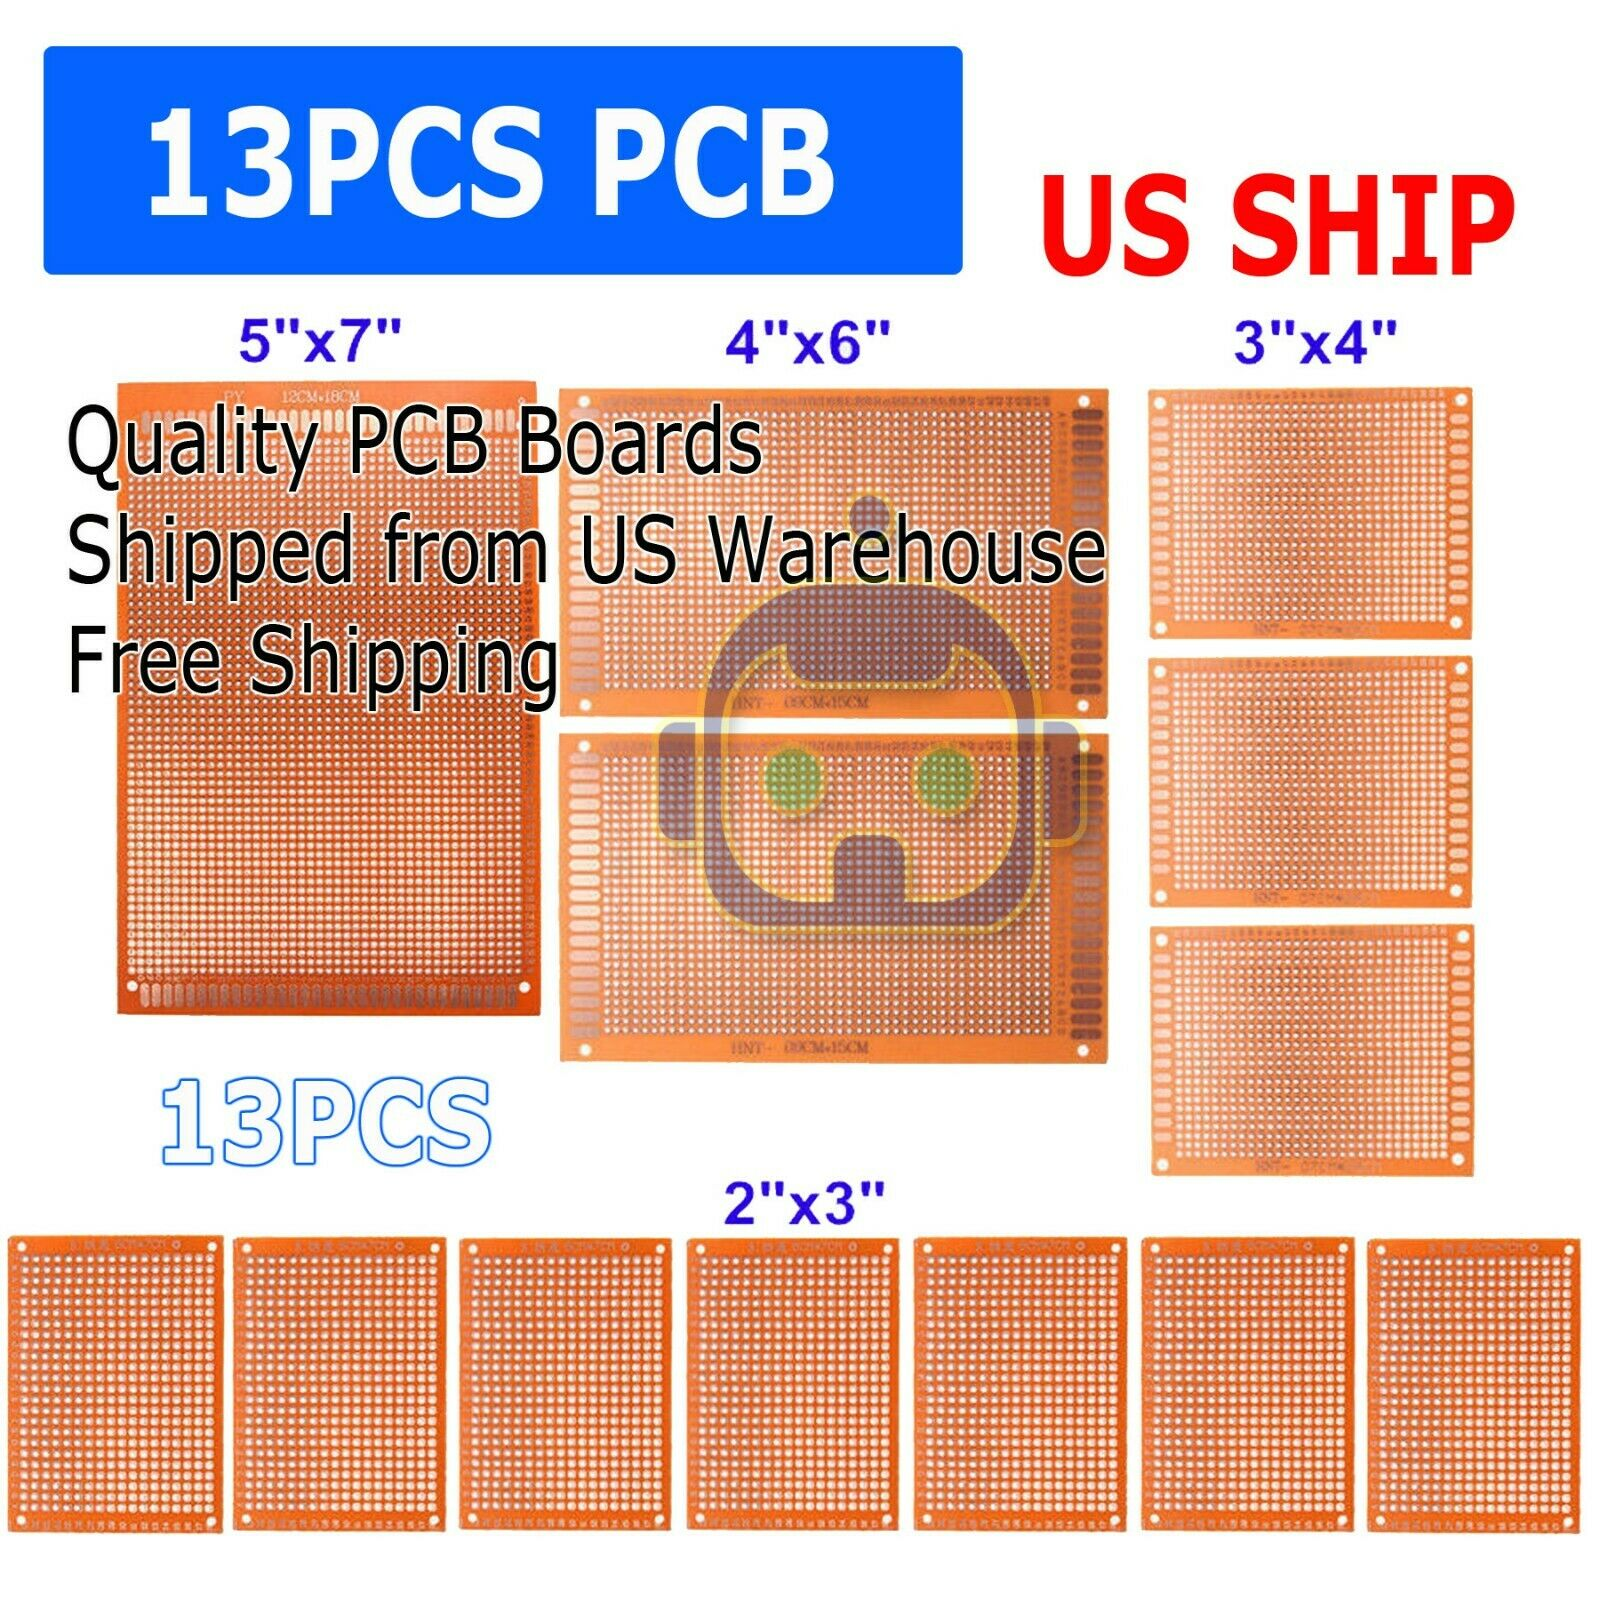 12pc Diy Prototyping Board Pcb Printed Circuit Prototype Breadboard Aquisition Of Electronic Boards Pcbs And Stripboard 1 7free Shipping See More